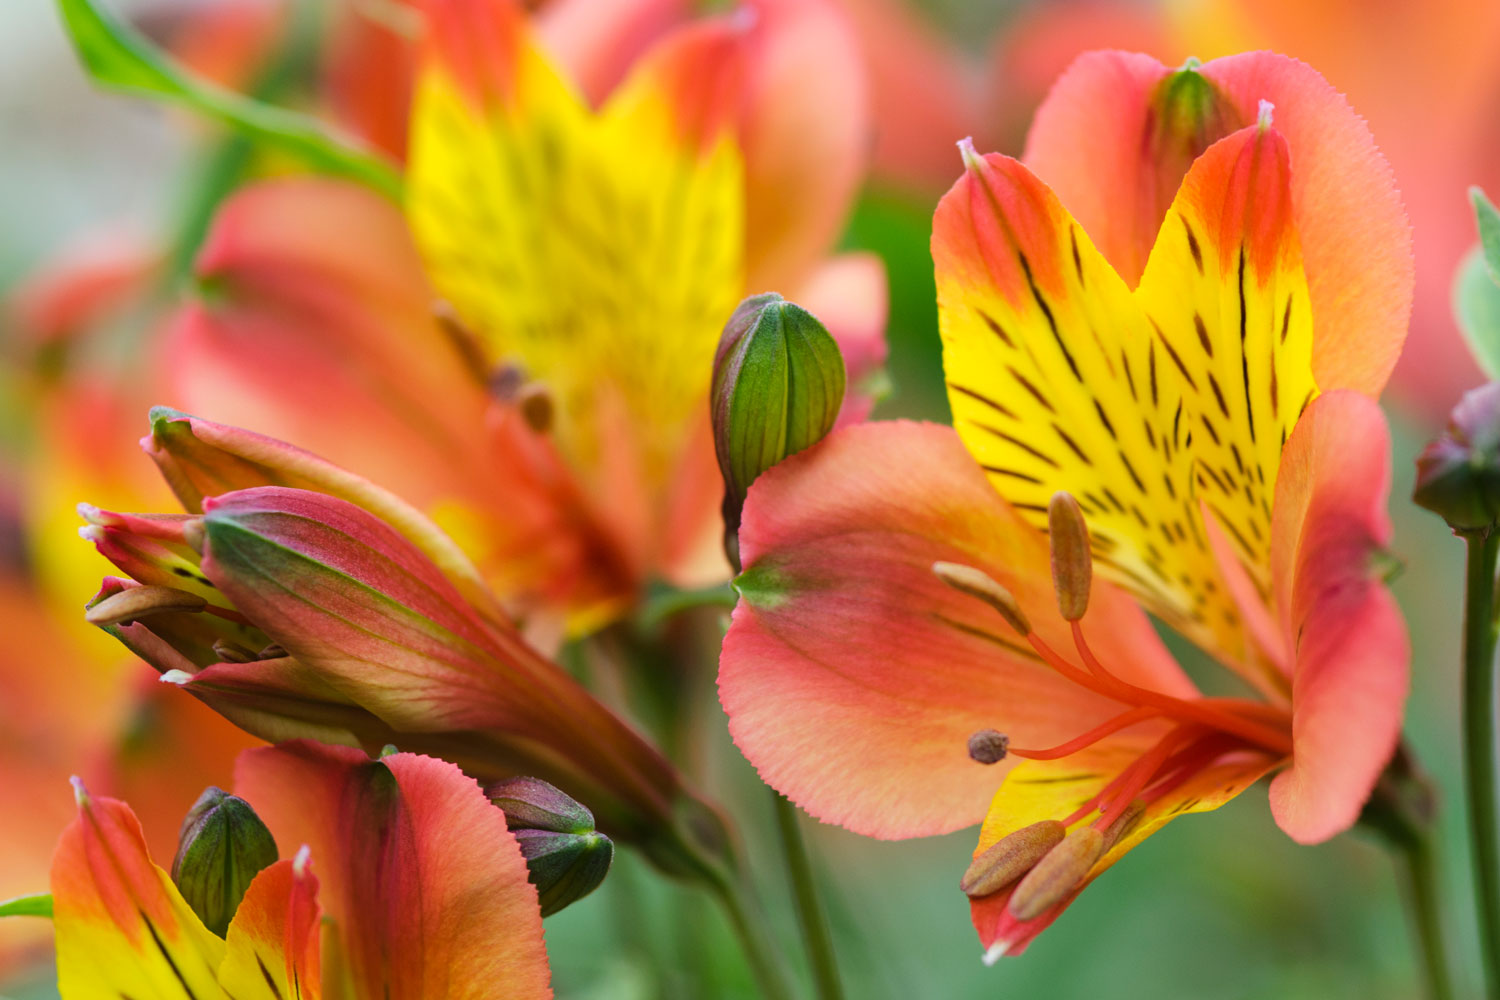 An up close photo of a Peruvian lily on a garden